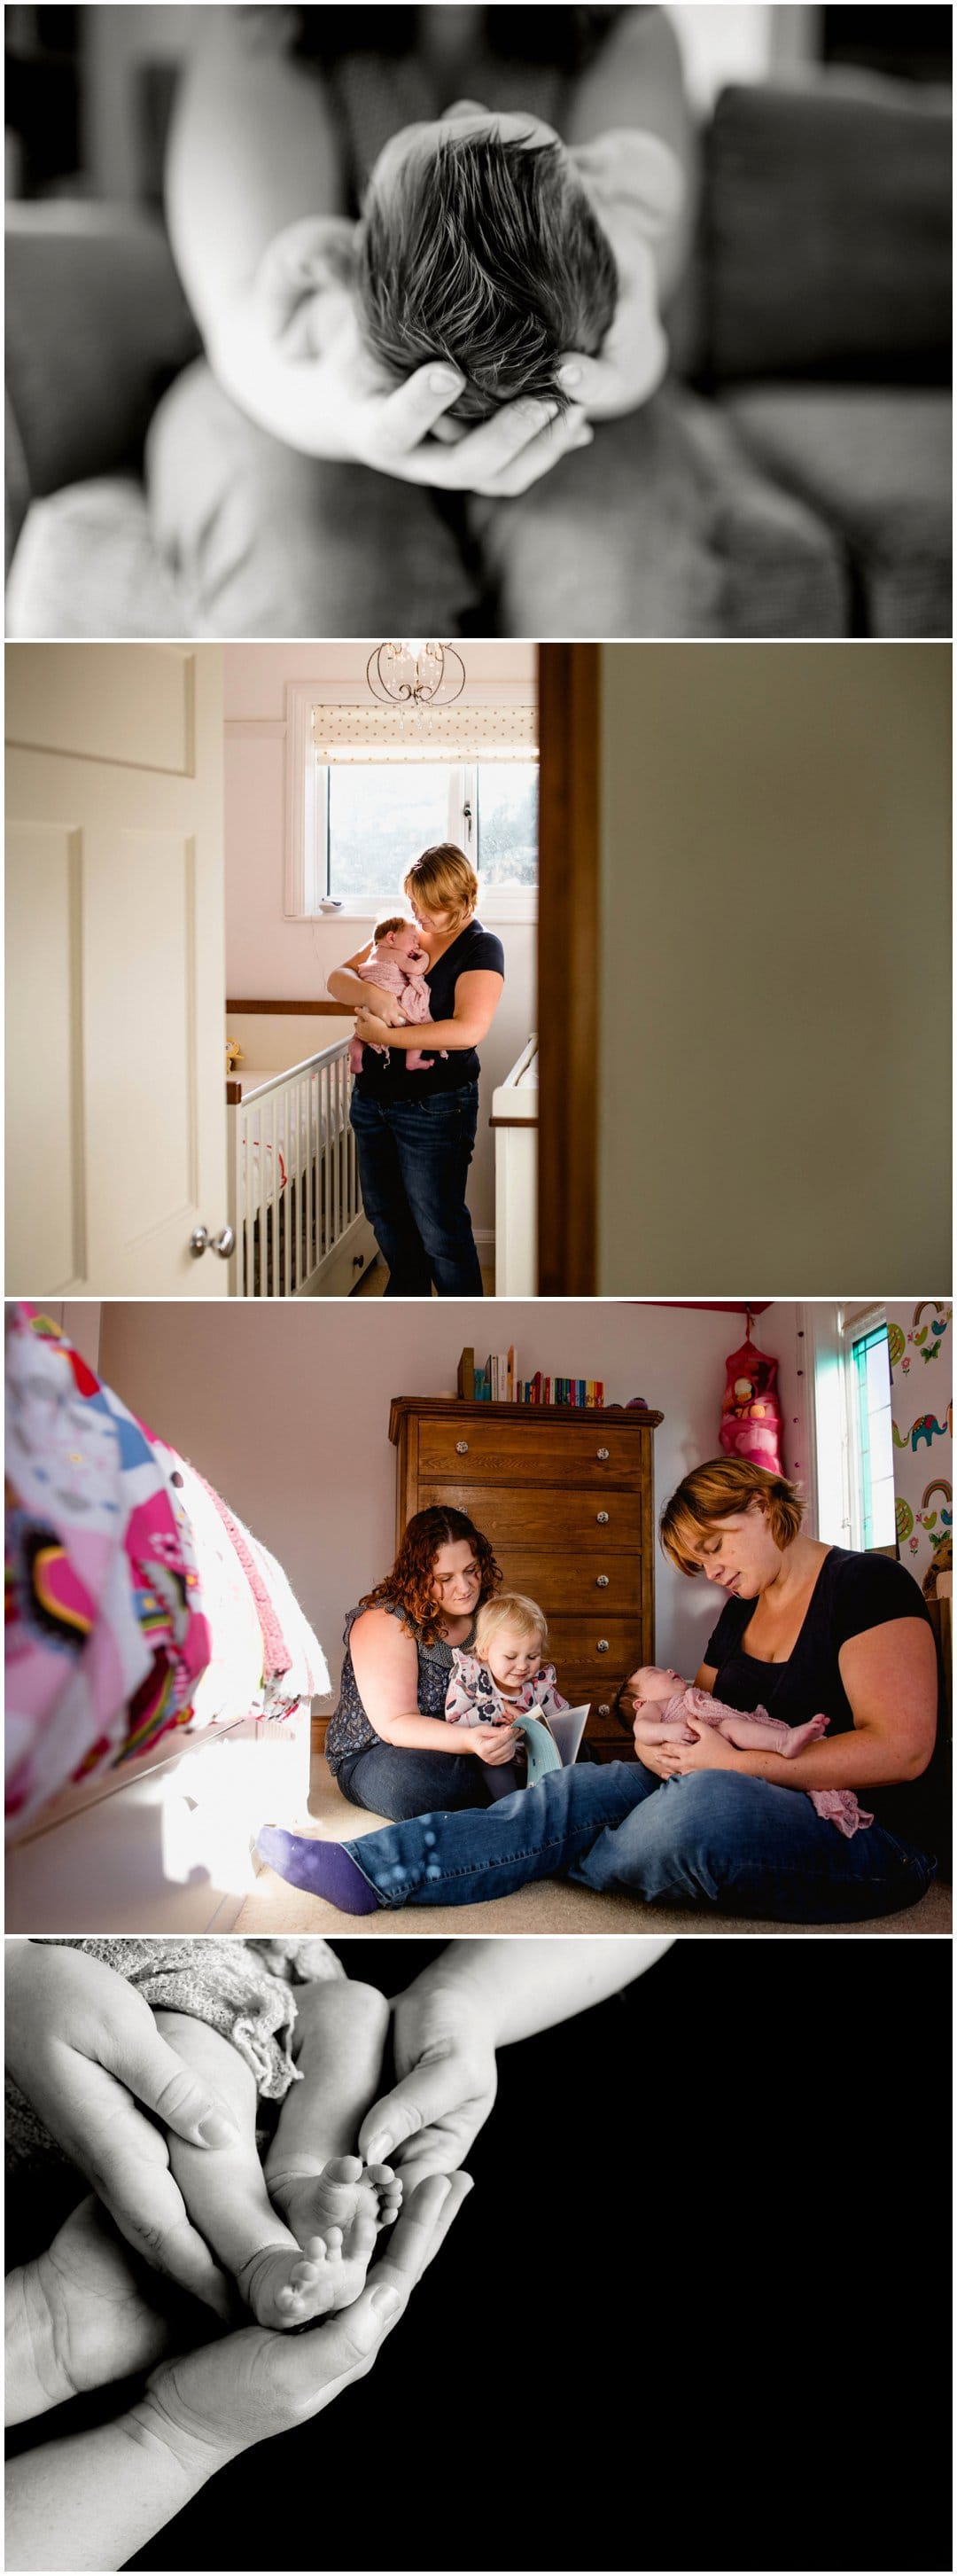 Baby Erin's newborn shoot by West Midlands and Birmingham lifestyle and wedding photographer Lisa Carpenter Photography working with the LGBT community promoting equal opportunities family shoots